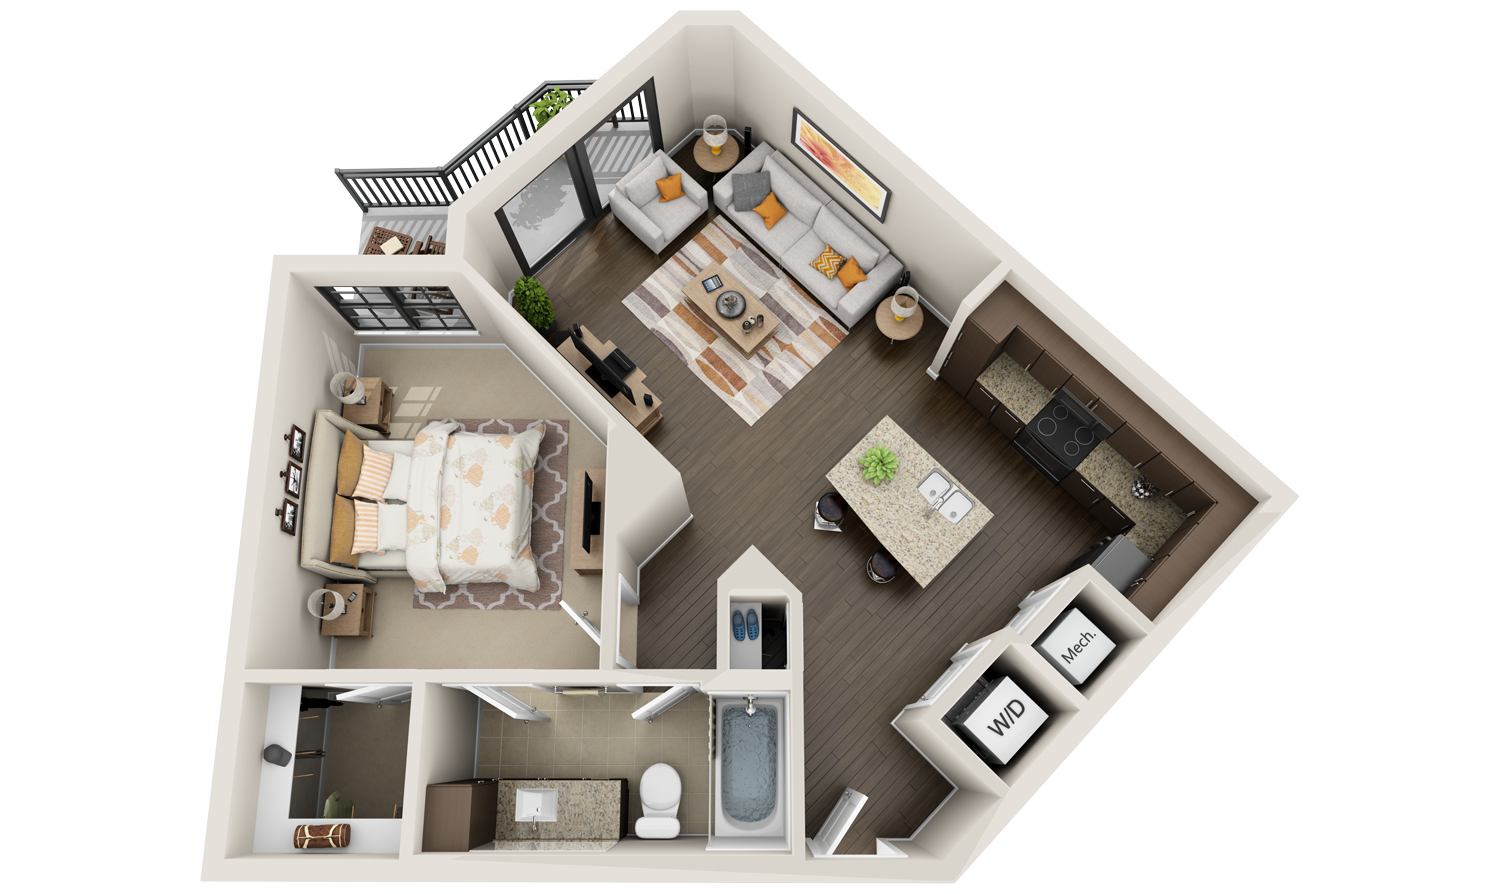 3d Floor Plan Image 1